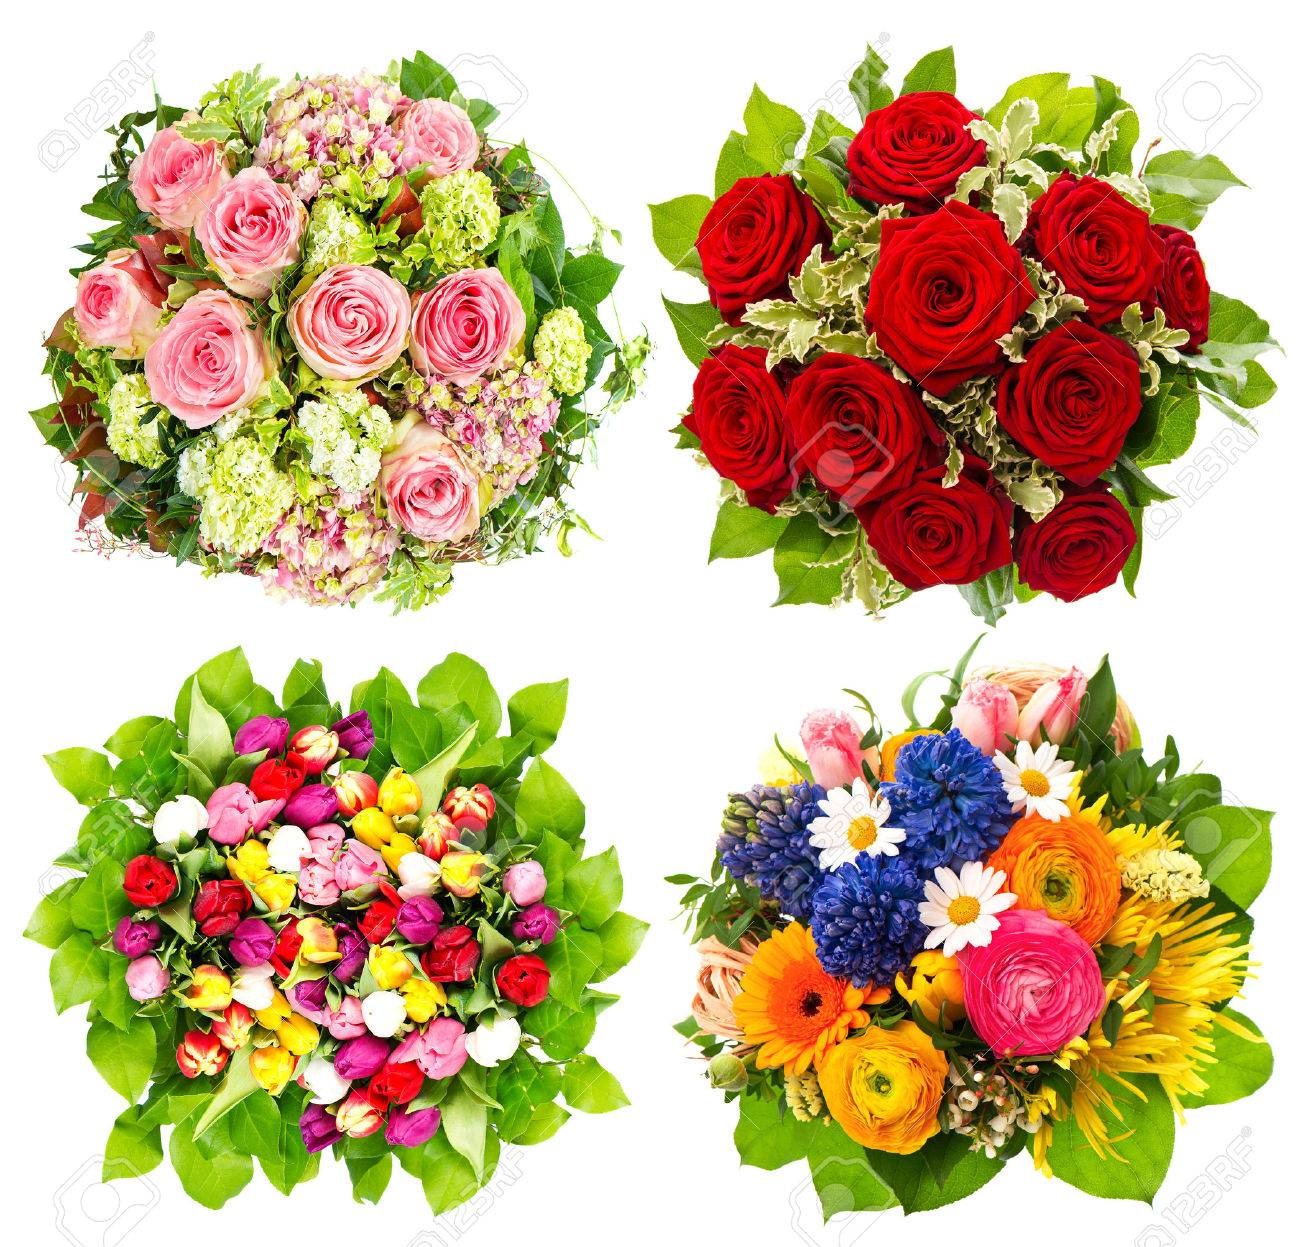 Four colorful flowers bouquet for birthday wedding mothers stock four colorful flowers bouquet for birthday wedding mothers day easter stock photo izmirmasajfo Image collections